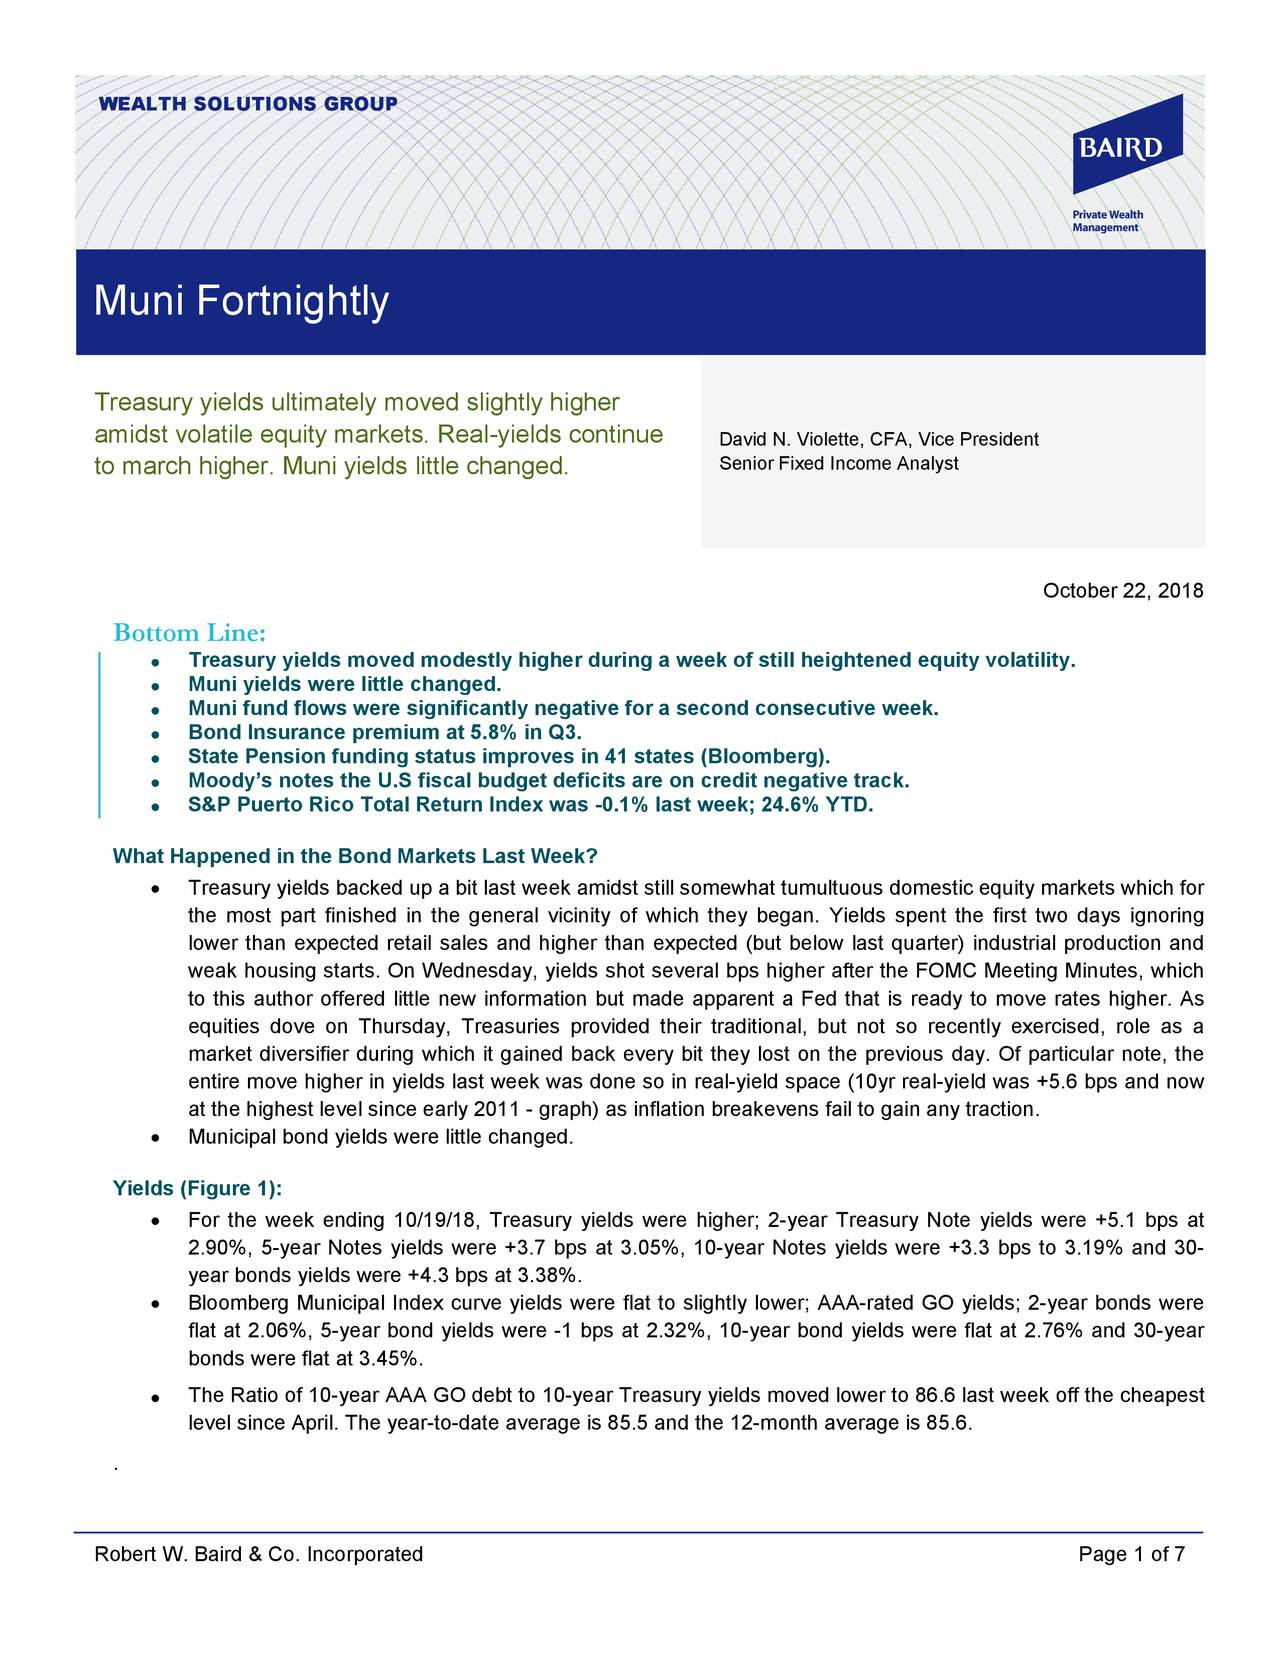 Muni Fortnightly Treasury yields ultimately moved slightly higher amidst volatile equity markets. Real-yields continue David N. Violette, CFA, Vice President to march higher. Muni yields little changed. Senior Fixed Income Analyst October 22, 2018 Bottom Line: Treasury yields moved modestly higher during a week of still heightened equity volatility. • • Muni yields were little changed. • Muni fund flows were significantly negative for a second consecutive week. • Bond Insurance premium at 5.8% in Q3. • State Pension funding status improves in 41 states (Bloomberg). Moody's notes the U.S fiscal budget deficits are on credit negative track. • • S&P Puerto Rico Total Return Index was -0.1% last week; 24.6% YTD. What Happened in the Bond Markets Last Week? • Treasury yields backed up a bit last week amidst still somewhat tumultuous domestic equity markets which for the most part finished in the general vicinity of which they began. Yields spent the first two days ignoring lower than expected retail sales and higher than expected (but below last quarter) industrial production and weak housing starts. On Wednesday, yields shot several bps higher after the FOMC Meeting Minutes, which to this author offered little new information but made apparent a Fed that is ready to move rates higher. As equities dove on Thursday, Treasuries provided their traditional, but not so recently exercised, role as a market diversifier during which it gained back every bit they lost on the previous day. Of particular note, the entire move higher in yields last week was done so in real-yield space (10yr real-yield was +5.6 bps and now at the highest level since early 2011 - graph) as inflation breakevens fail to gain any traction. • Municipal bond yields were little changed. Yields (Figure 1): • For the week ending 10/19/18, Treasury yields were higher; 2- year Treasury Note yields were +5.1 bps at 2.90%, 5-year Notes yields were +3.7 bps at 3.05%, 10- year Notes yields were +3.3 bps to 3.19% an